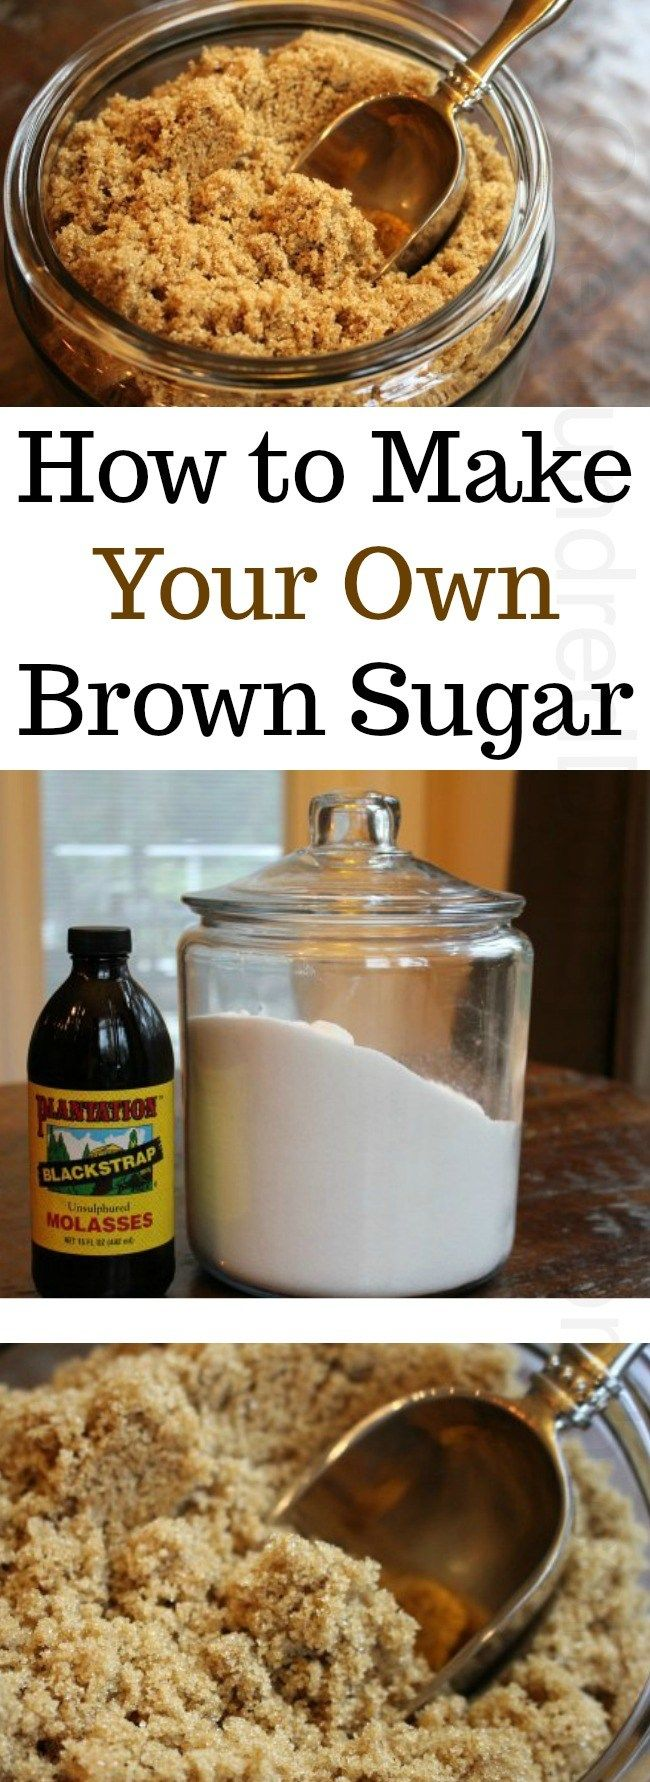 How to Make Your Own Brown Sugar - One Hundred Dollars a Month